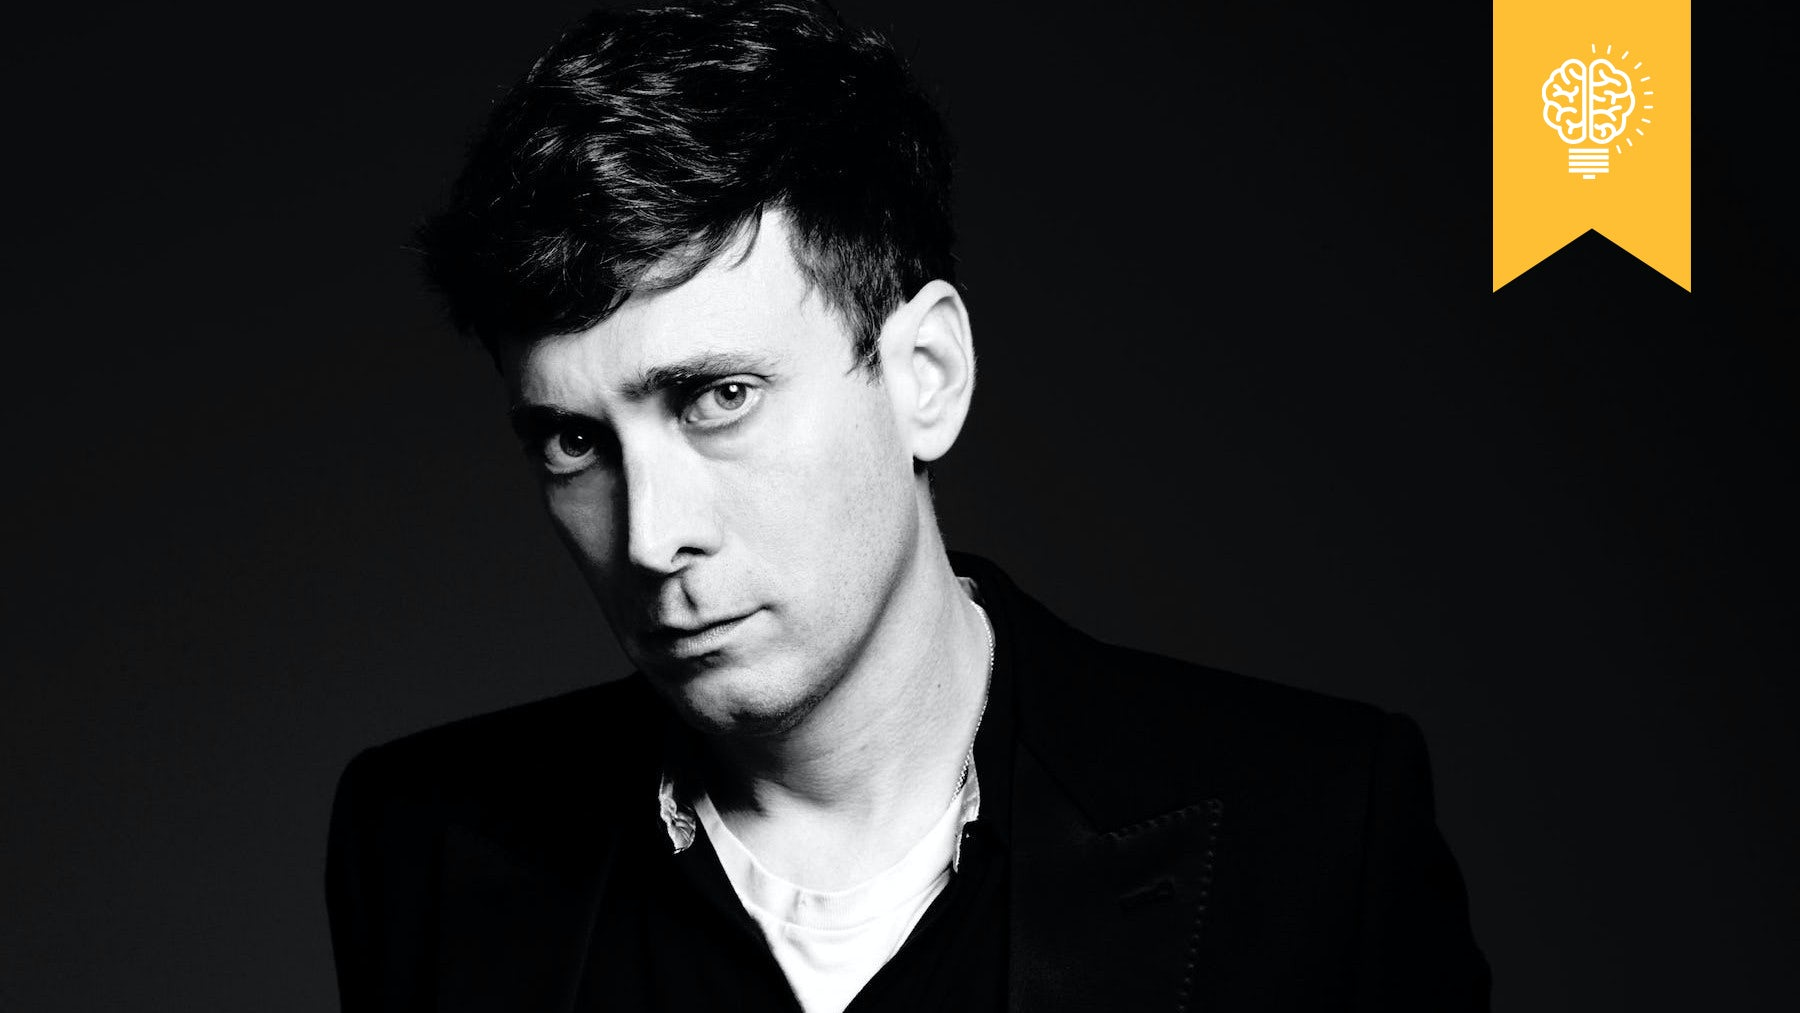 Article cover of Hedi Slimane's Céline Shake-Up